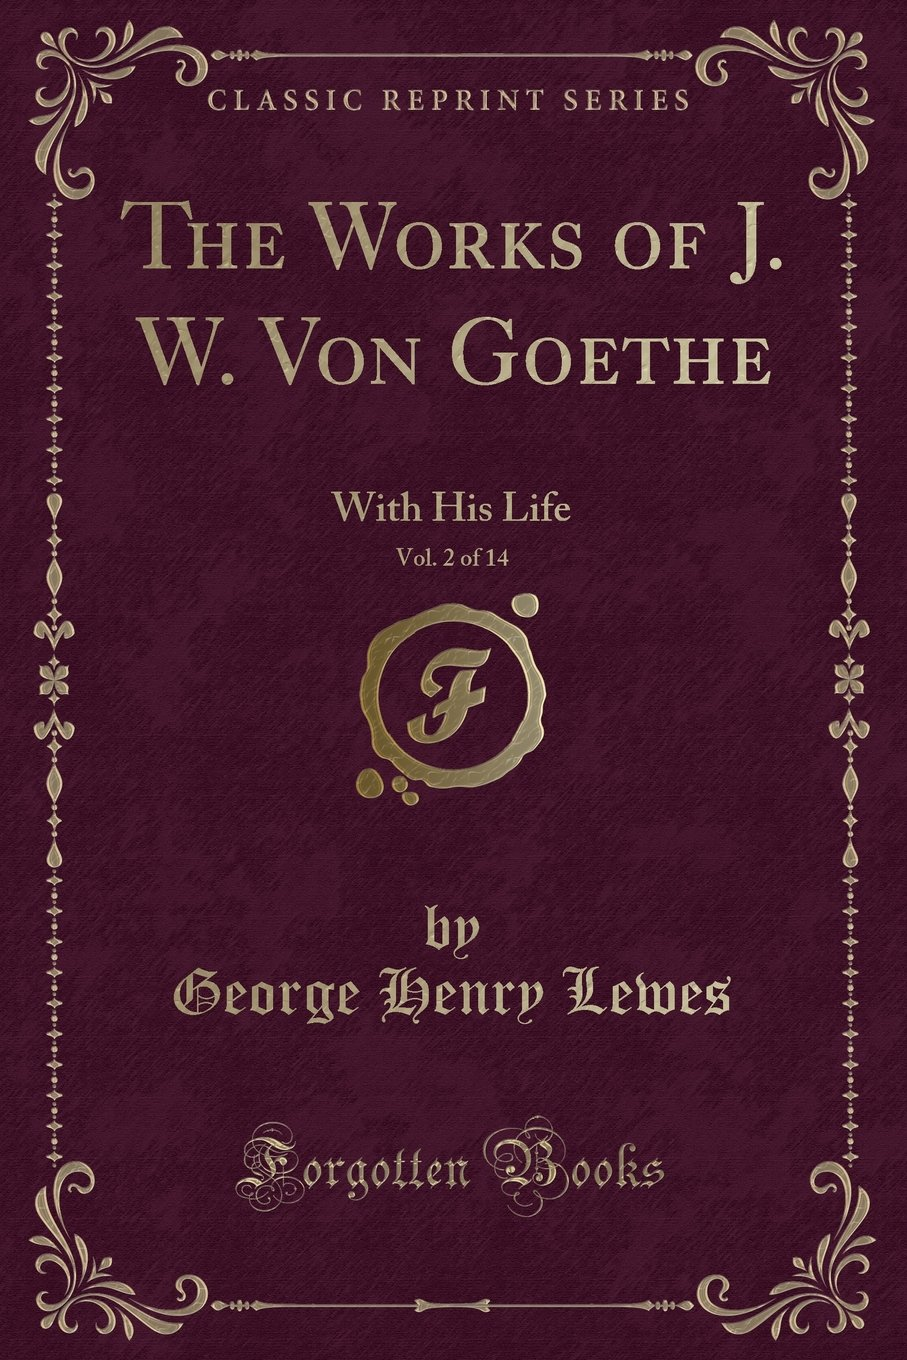 The Works of J. W. Von Goethe: With His Life By George Henry Lewes, Vol. 2 of 14 (Classic Reprint) ebook